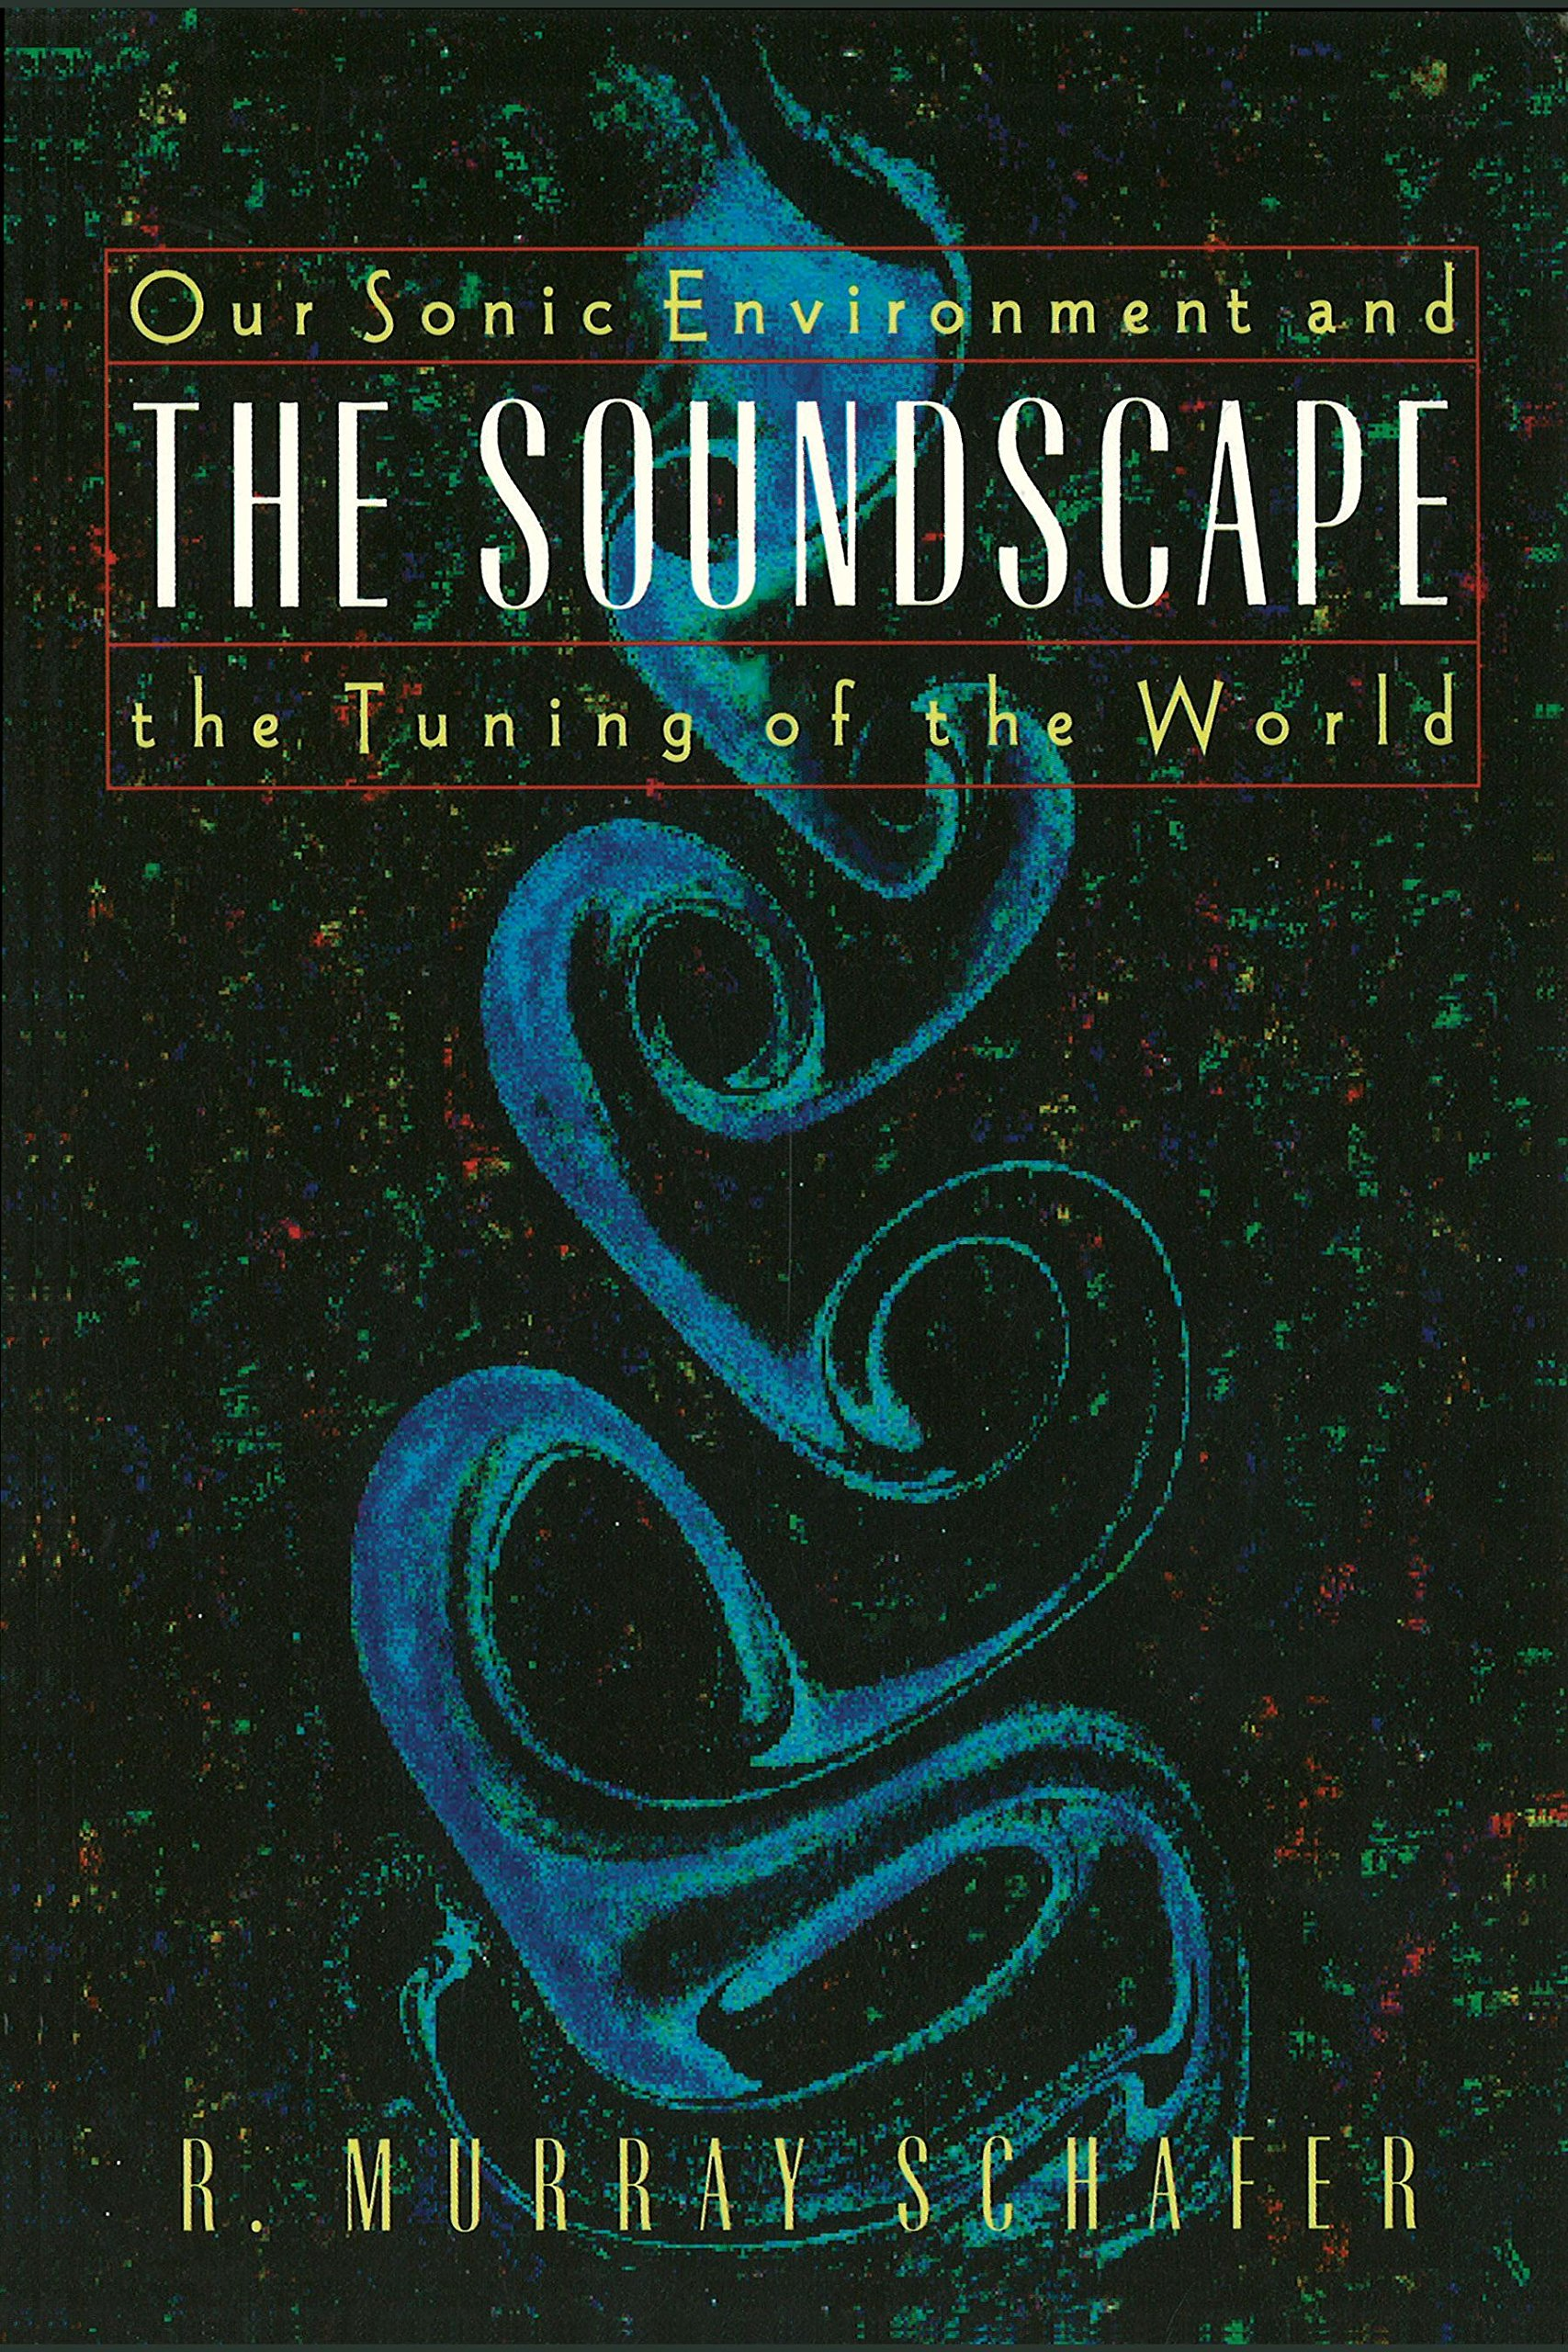 Raymond Murray Schafer.The Soundscape. Our Sonic Environment and the Tuning of the World, Destiny Books, 1977